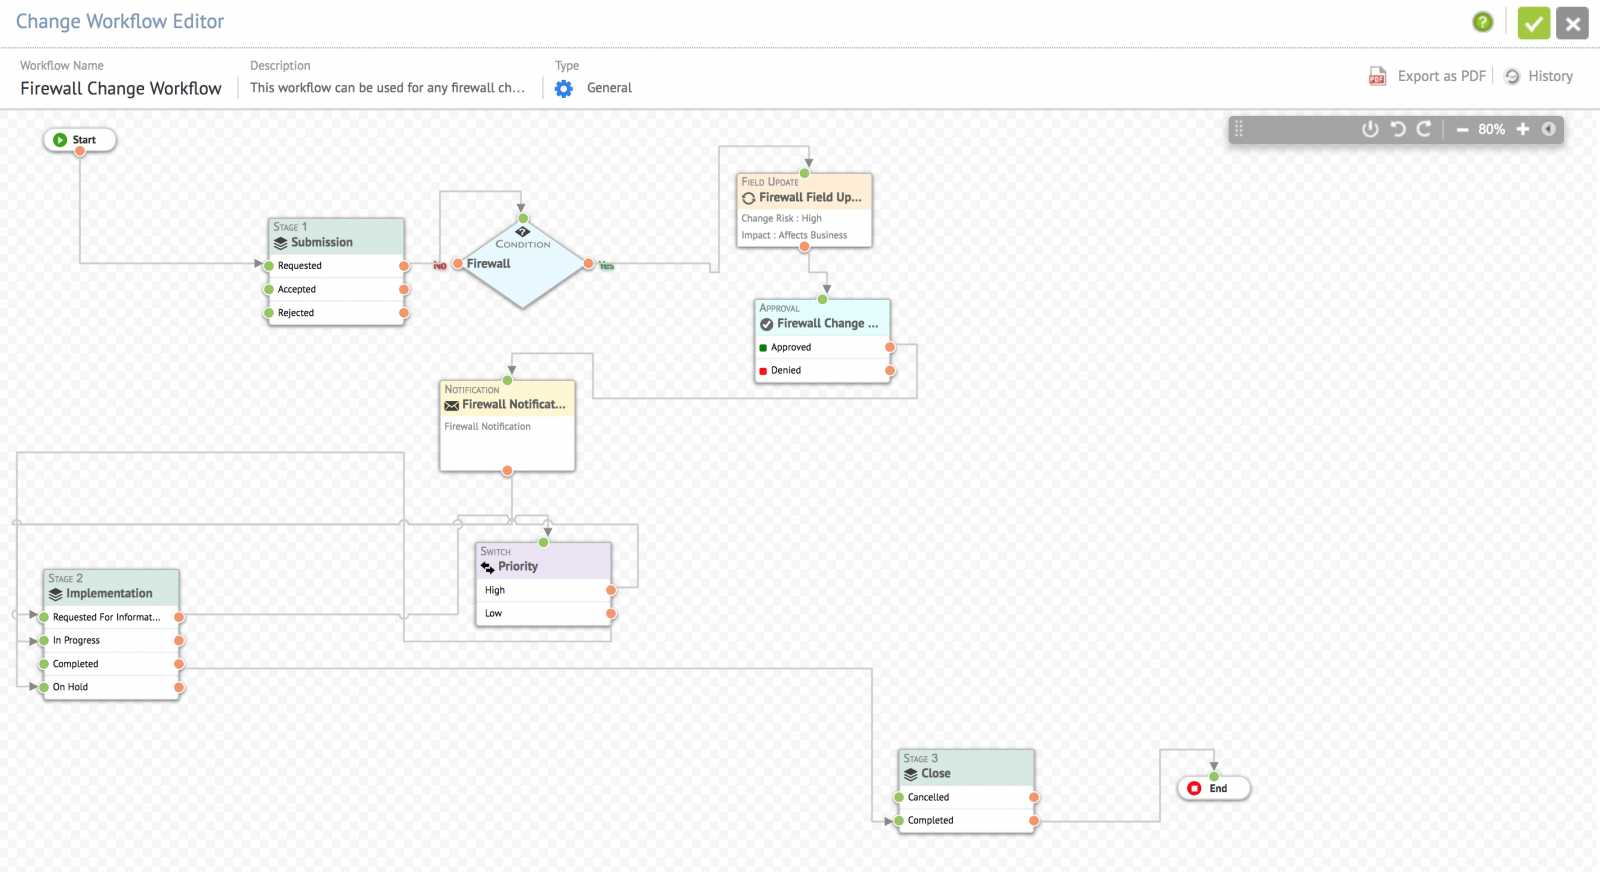 Change workflows customization servicedesk plus cloud sdp ondemand in this workflow there are 3 stagesbmission implementation and close these 3 nodes will be the major milestones of this change workflow ccuart Images